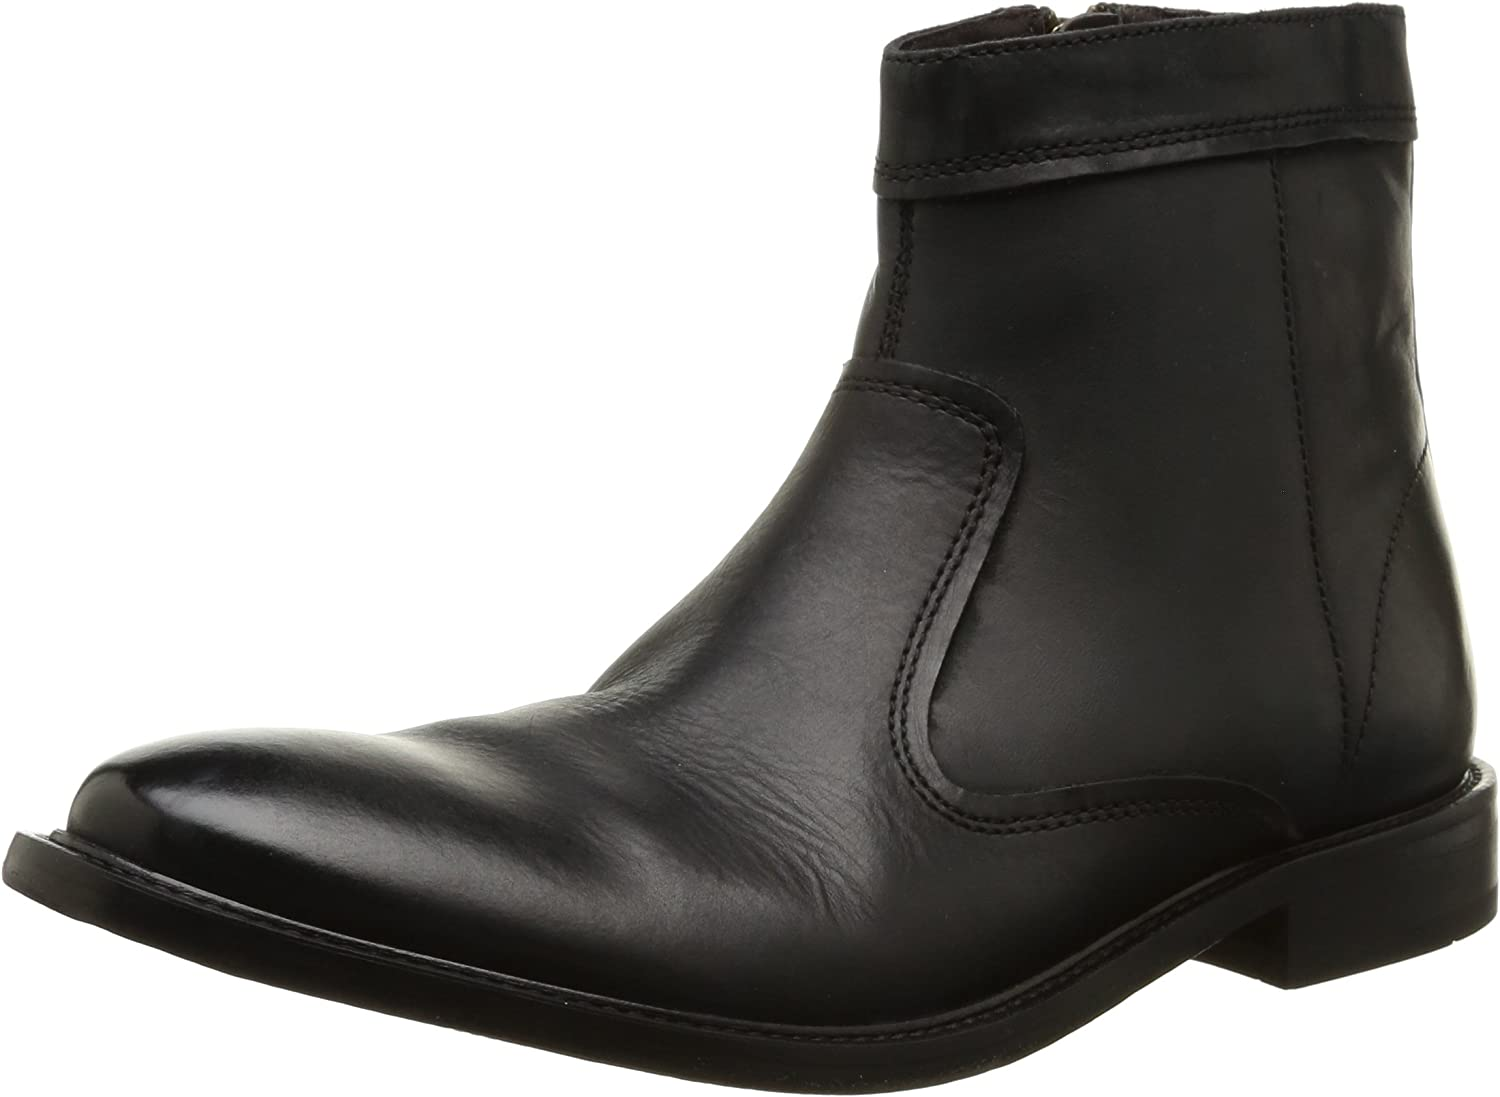 Base London Macafee, Men's Boots